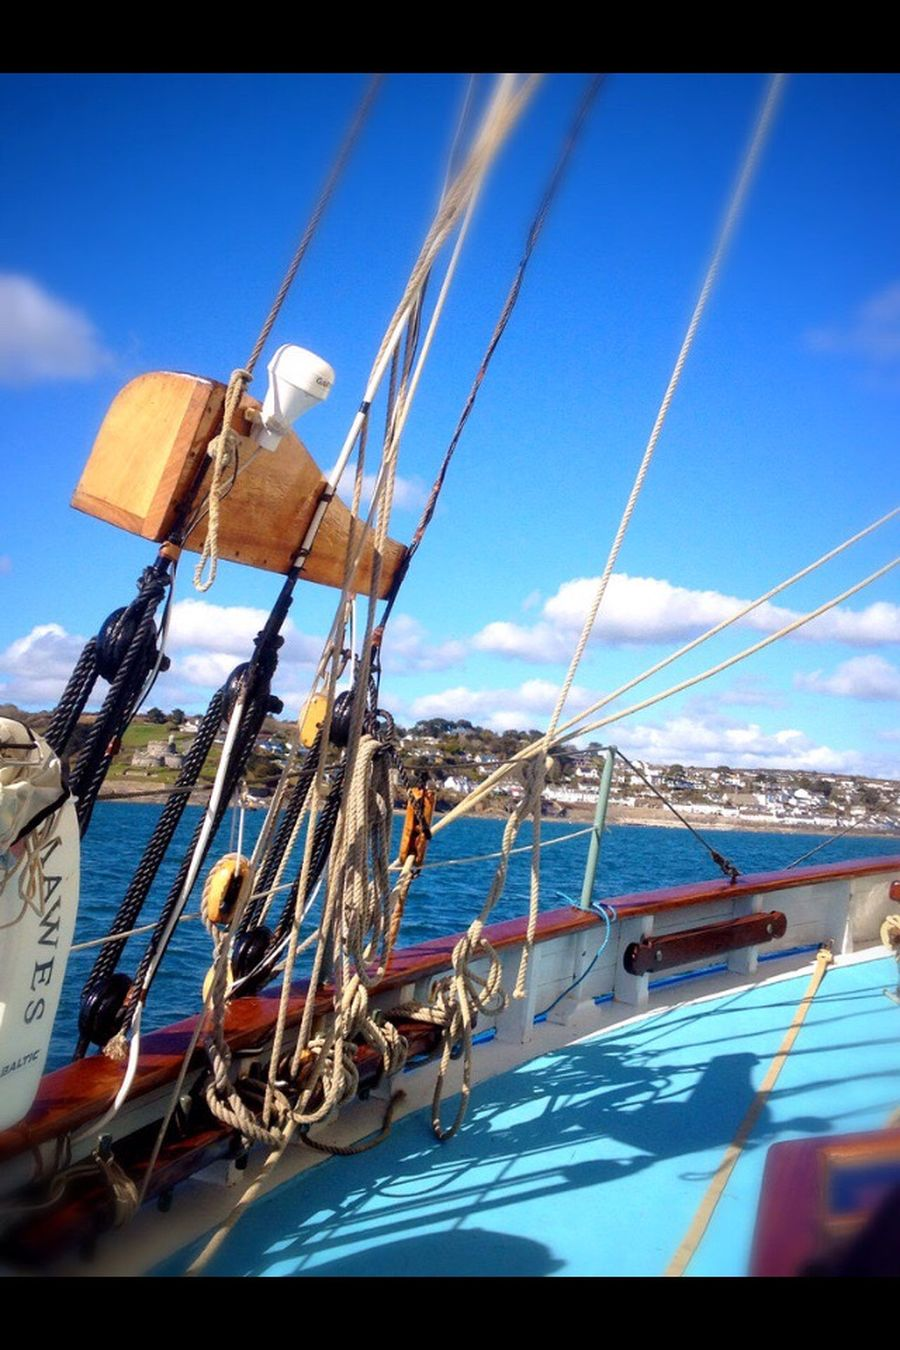 St Mawes Nautical Vessel Blue Boat Rope Sky Water Day Cornwall Abundance Harbor Group Of Objects Outdoors Large Group Of Objects Sea Nature No People Cloud - Sky Port Ocean The Color Of Sport Pilot Cutter Wooden Hull Wooden Boat Racing